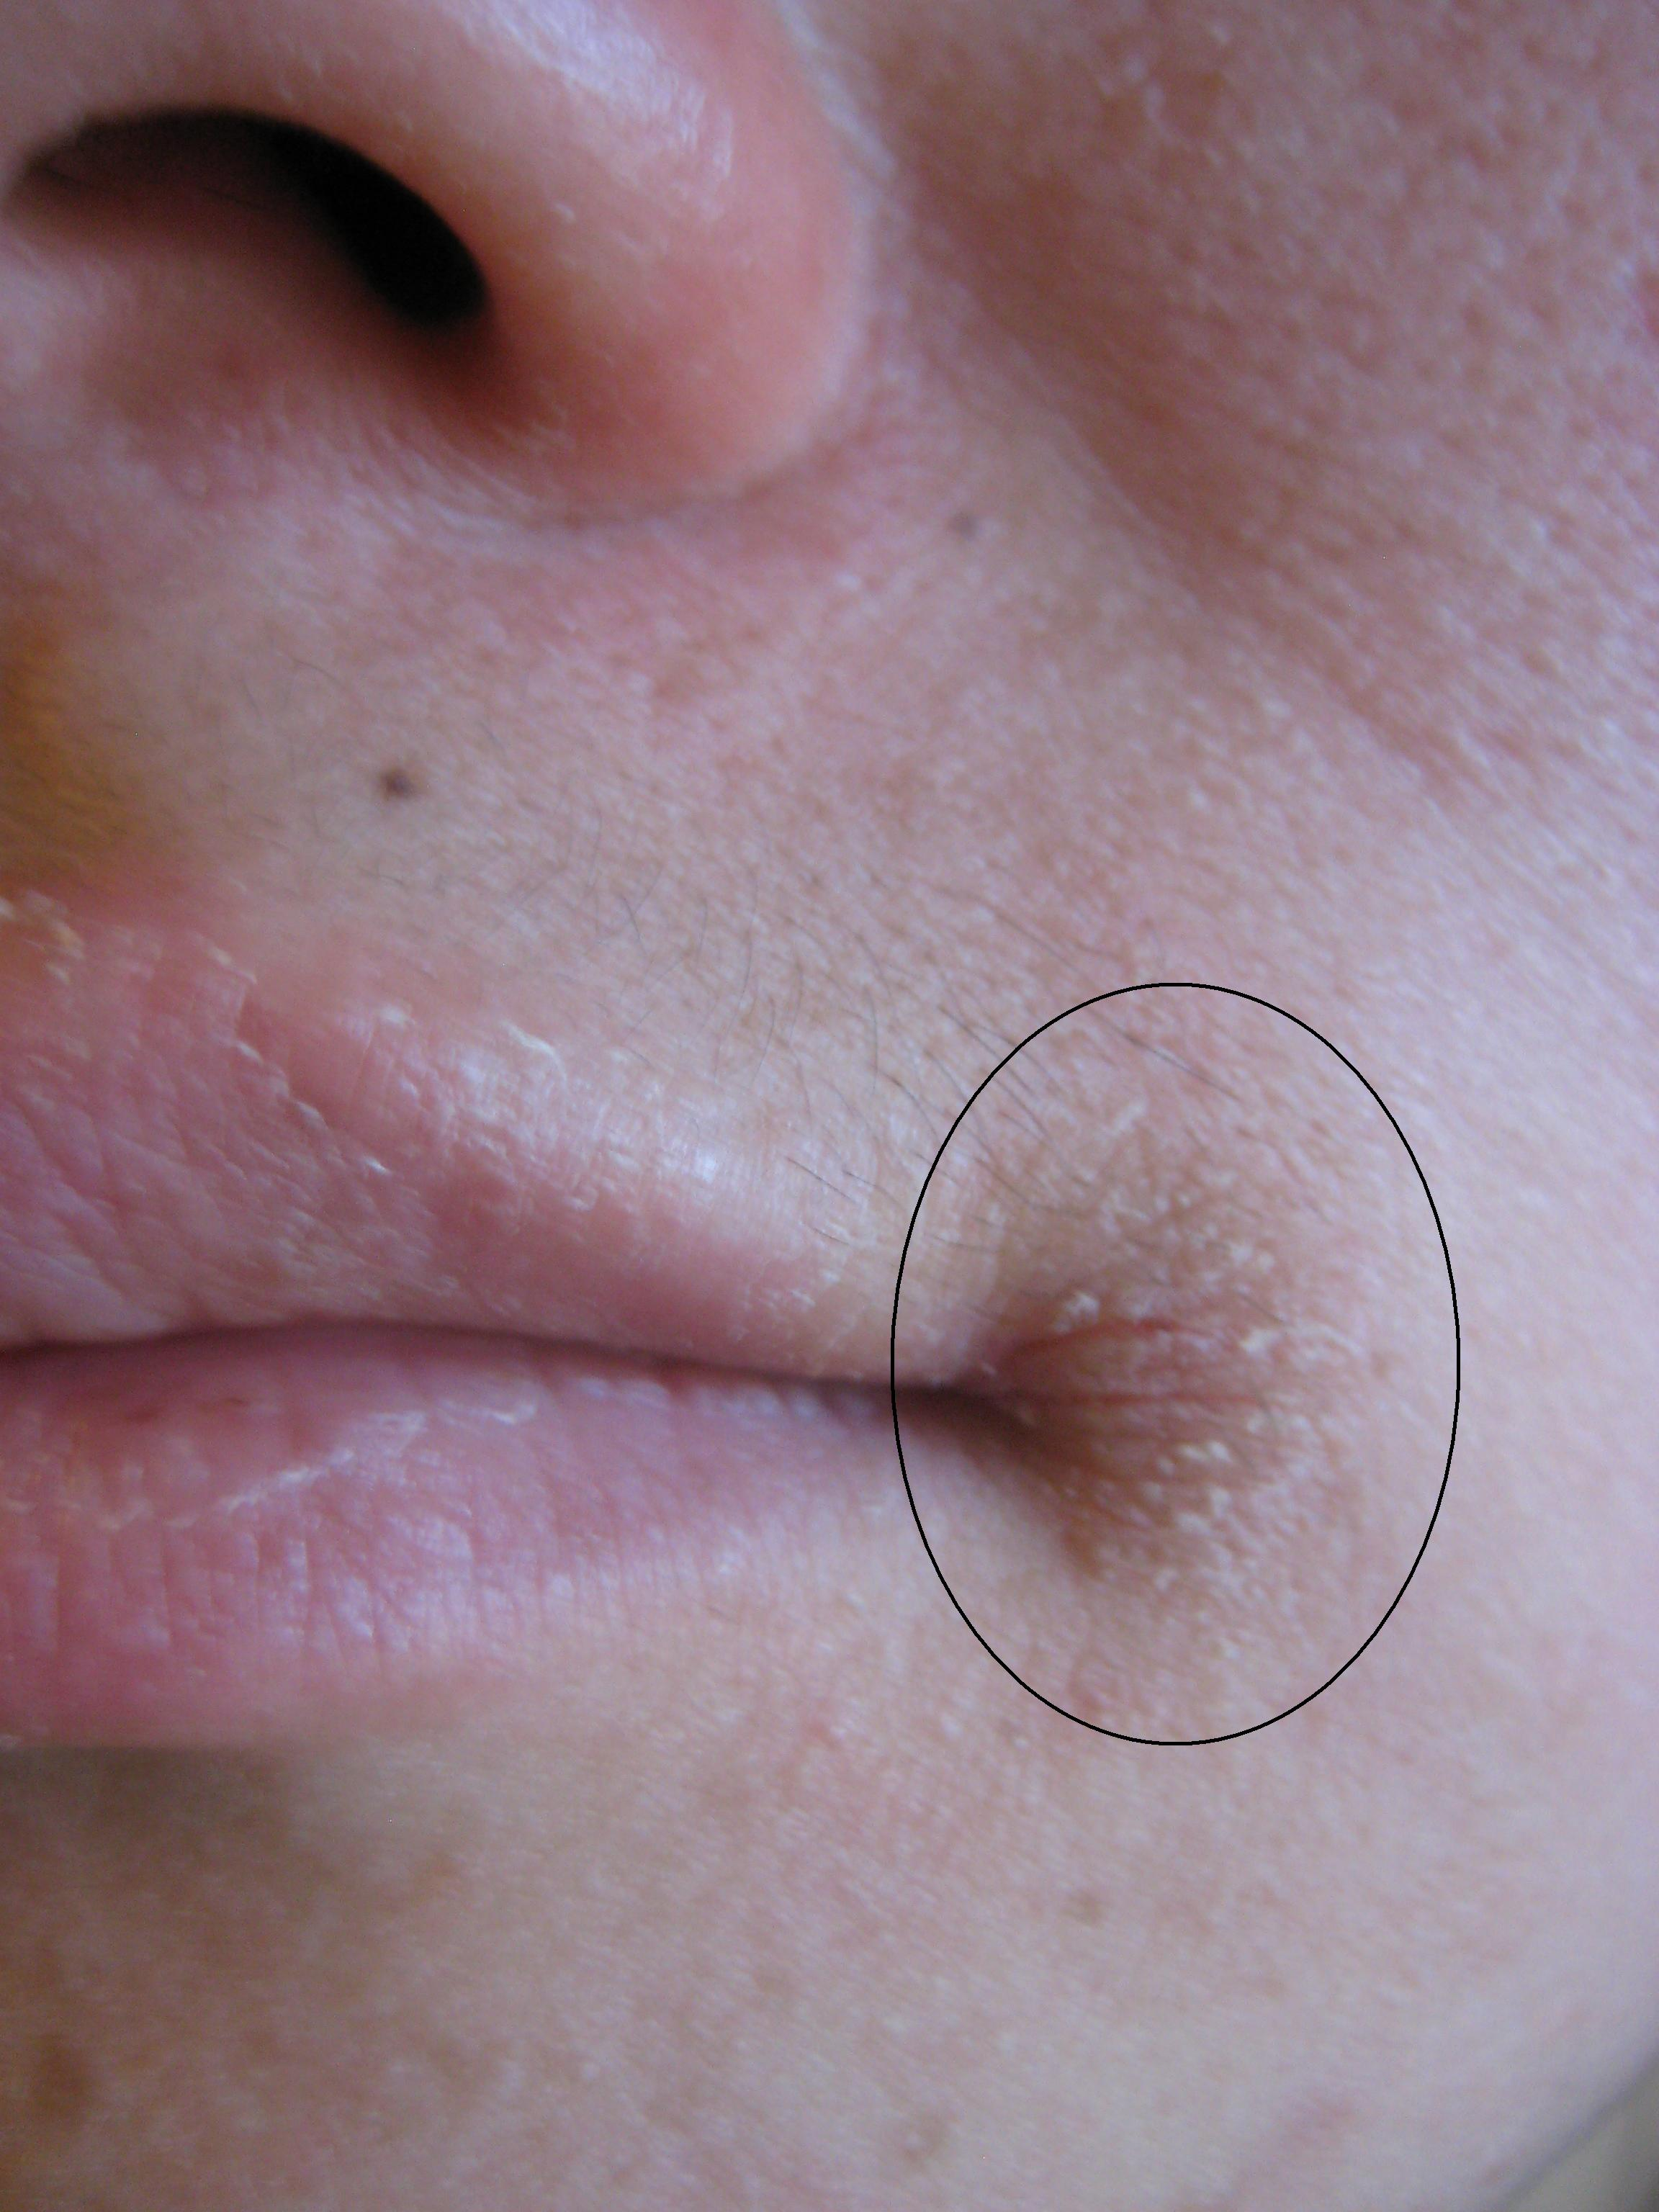 File:Angular Cheilitis.JPG - Wikipedia